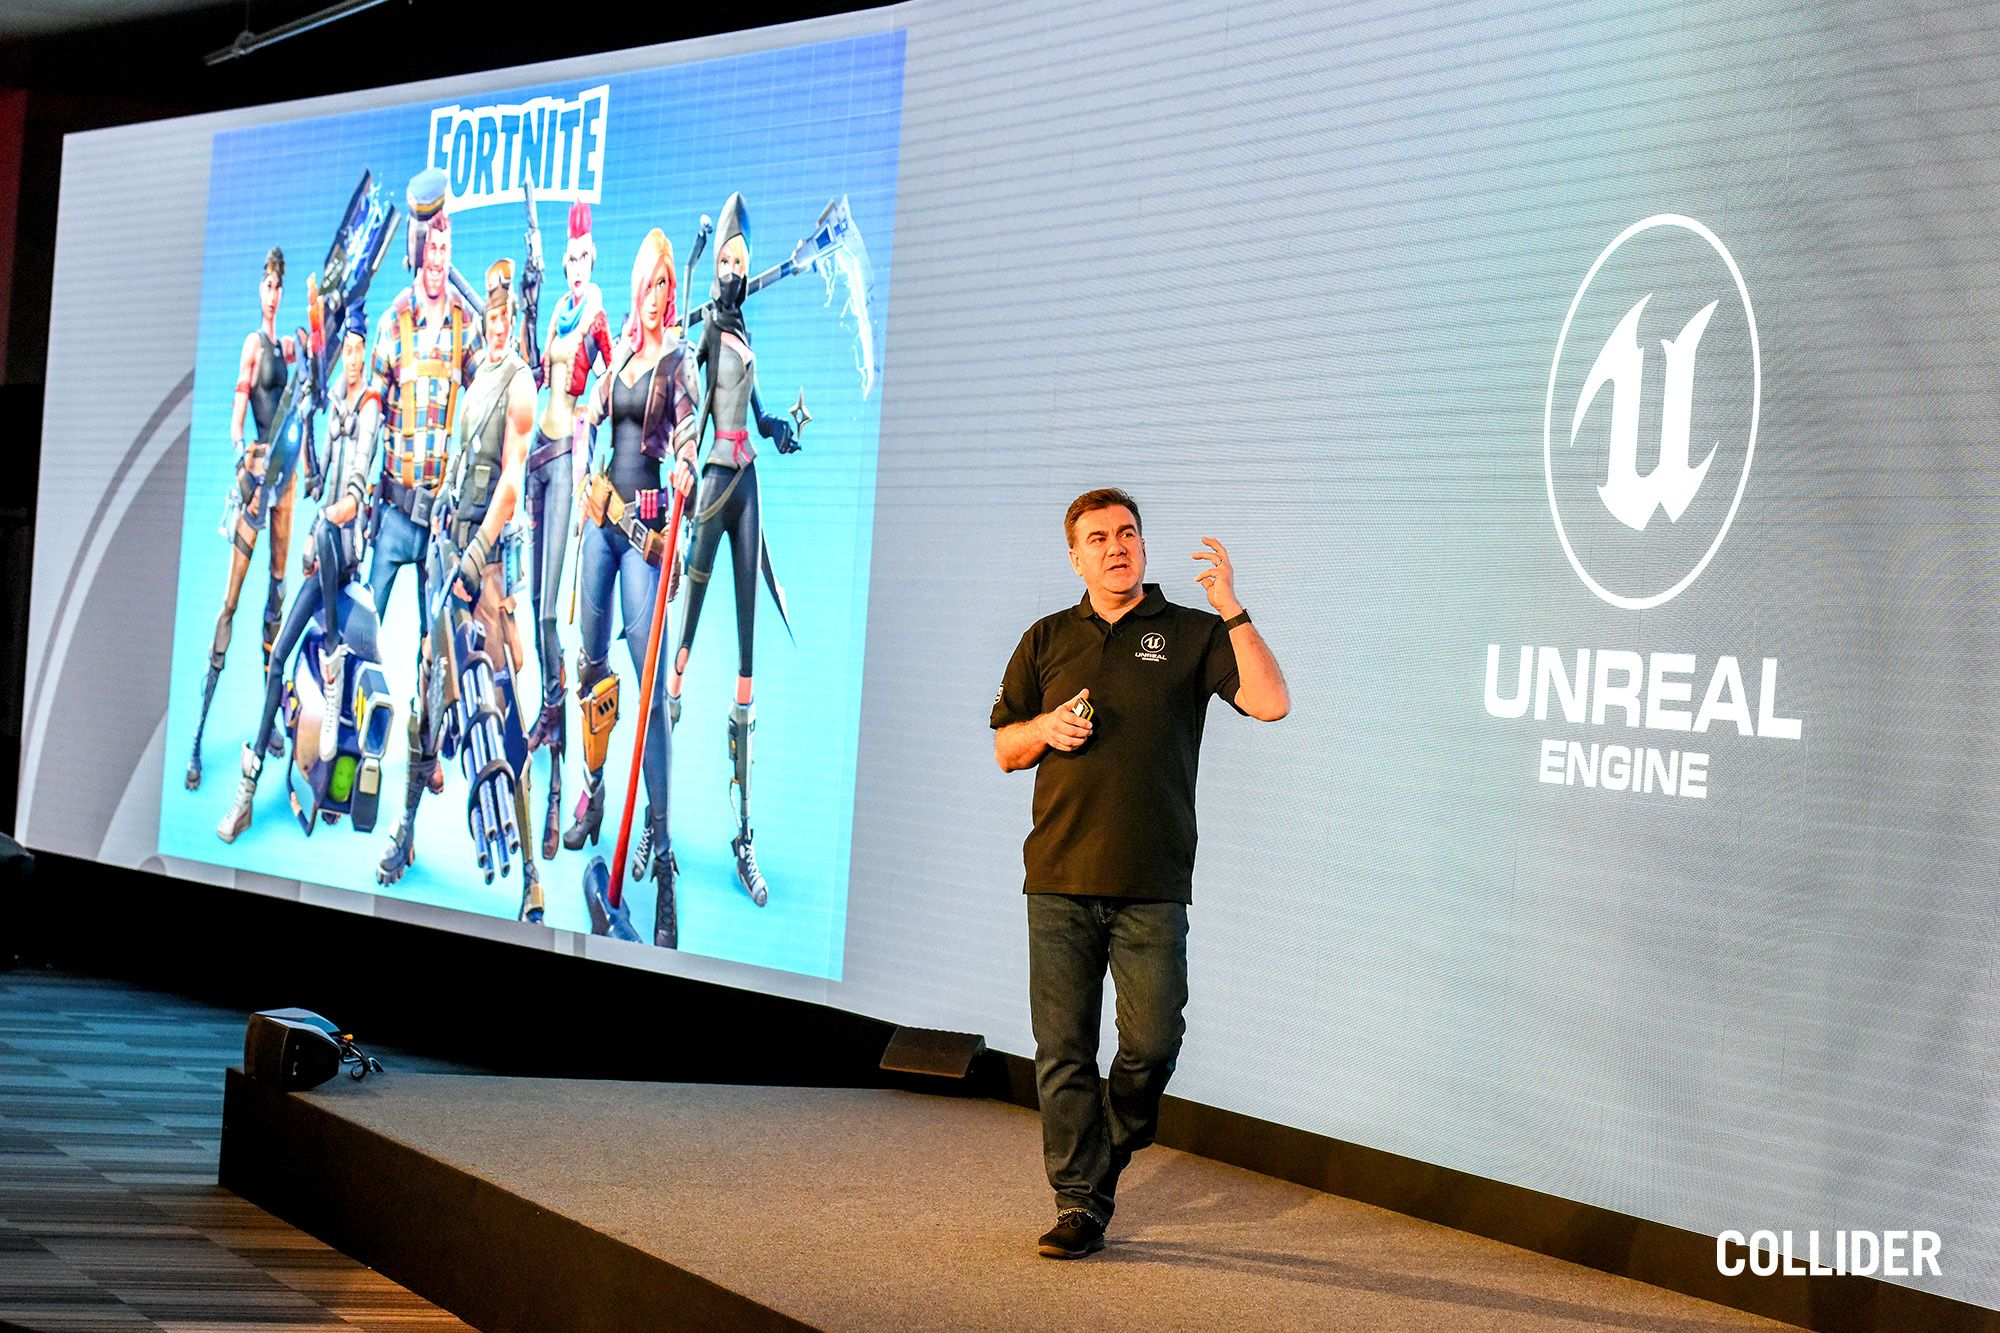 Conference Stage - Collider Event Staging for Unreal Engine for